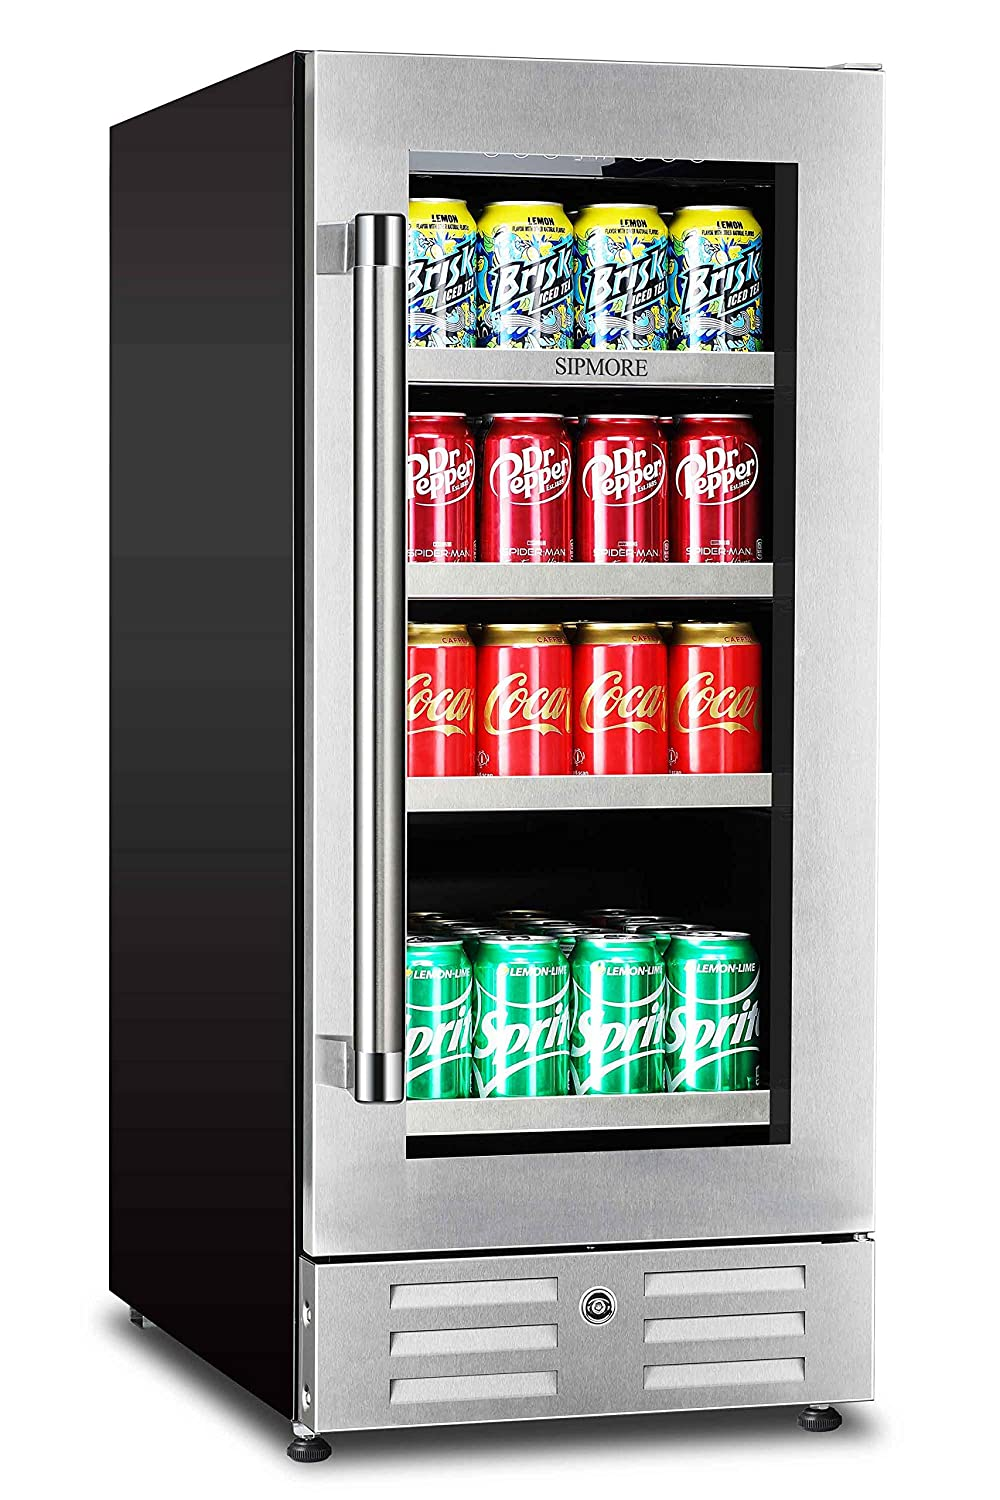 Sipmore Beverage Refrigerator and Cooler – Fit Perfectly into 15 inch Space – Stainless Steel Shelf 88 Can Built-in with Glass Door for Soda Beer, Powerful Drink Machine with Smart Control System